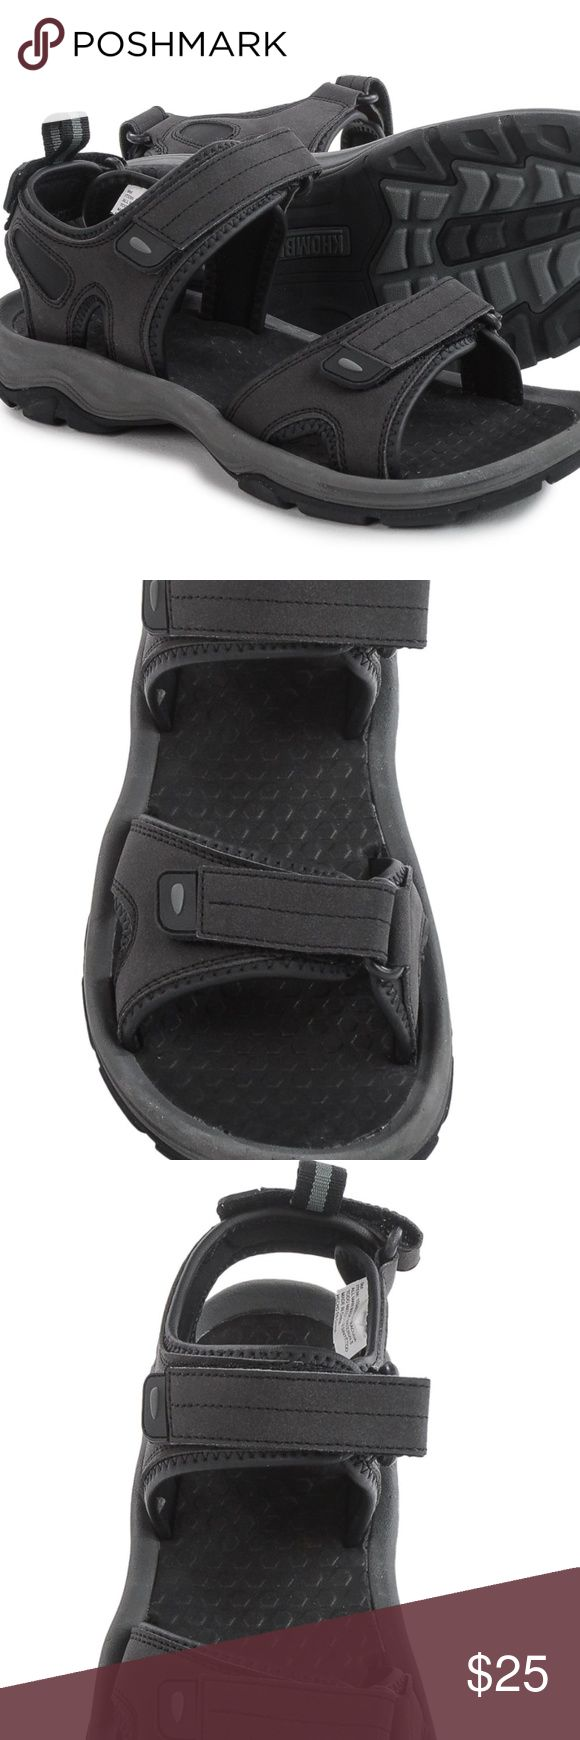 NEW Mens Sport Sandals Khombu Barracuda Size 11 Men's Sport Sandals Khombu Barracuda ~ Black ~ SIZE 11 ~ New with Tags (No Box) Khombu's Barracuda sport sandals make trail adventuring, puddle jumping and creek crossing a breeze, thanks to a rugged, grippy design, hydrophobic cushion footbed and three fully adjustable straps for a custom fit all the way around. Durable, water-resistant upper Three adjustable touch-fasten straps Cushioned, moisture-wicking lining Deeply cushioned hydrophobic…